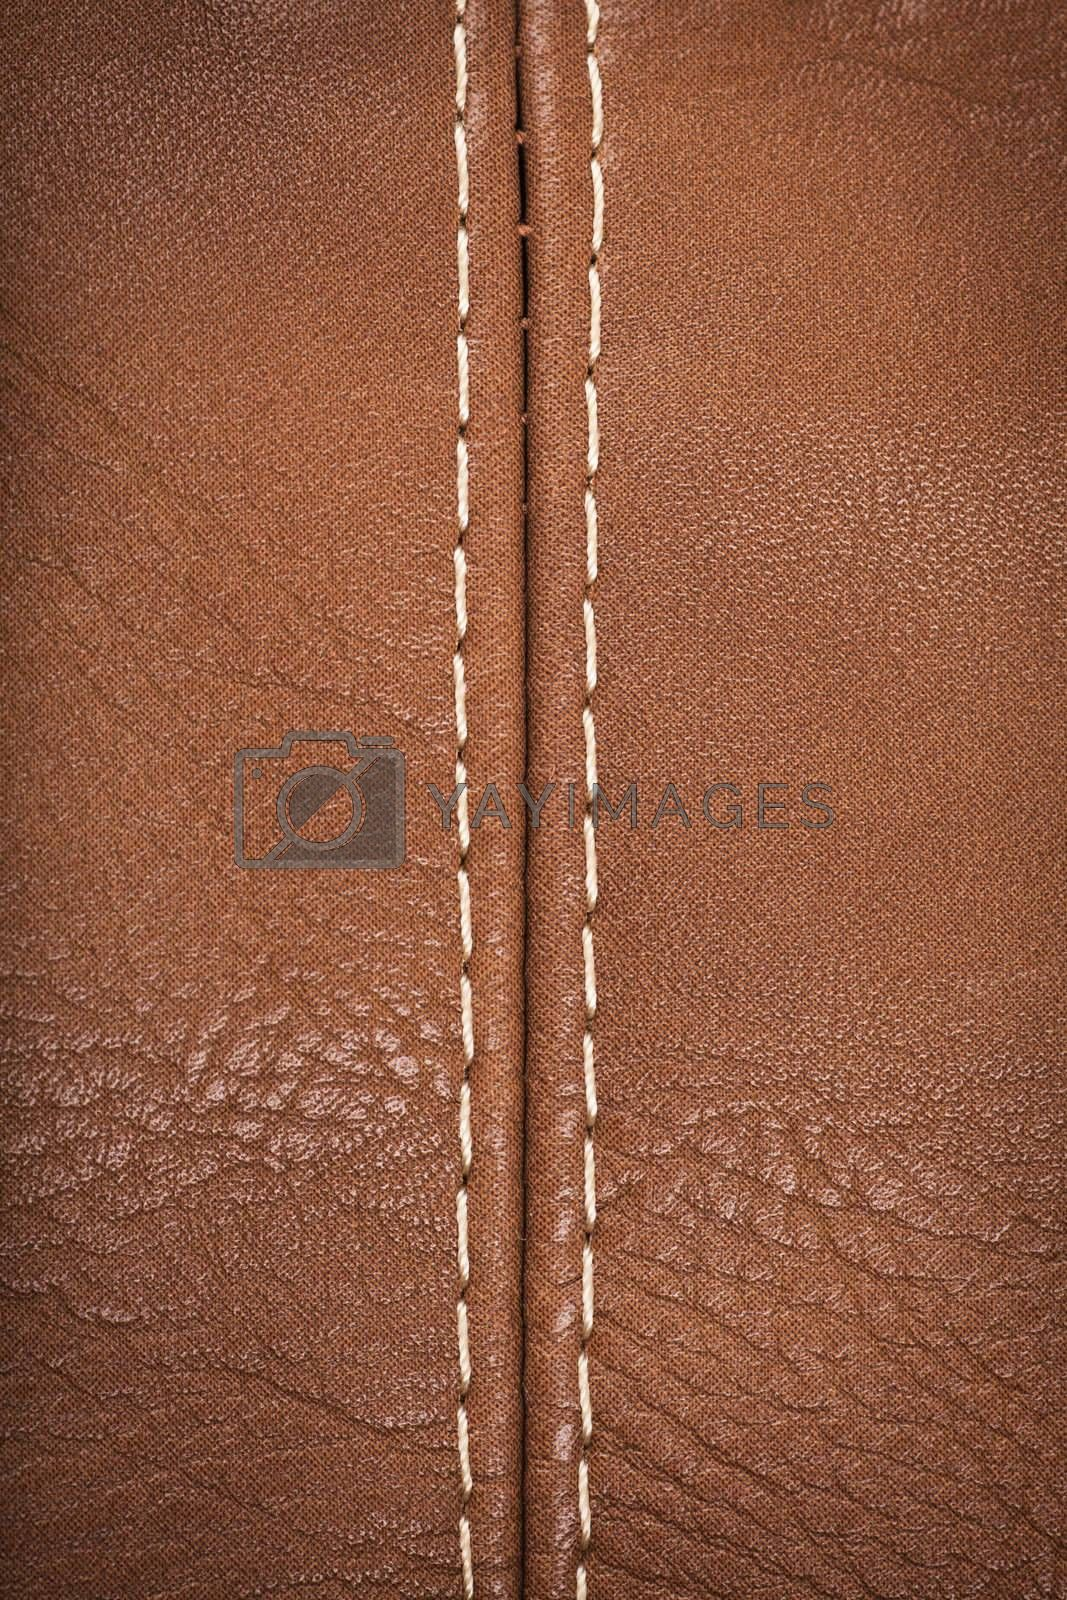 Royalty free image of Seam on a leather by AGorohov